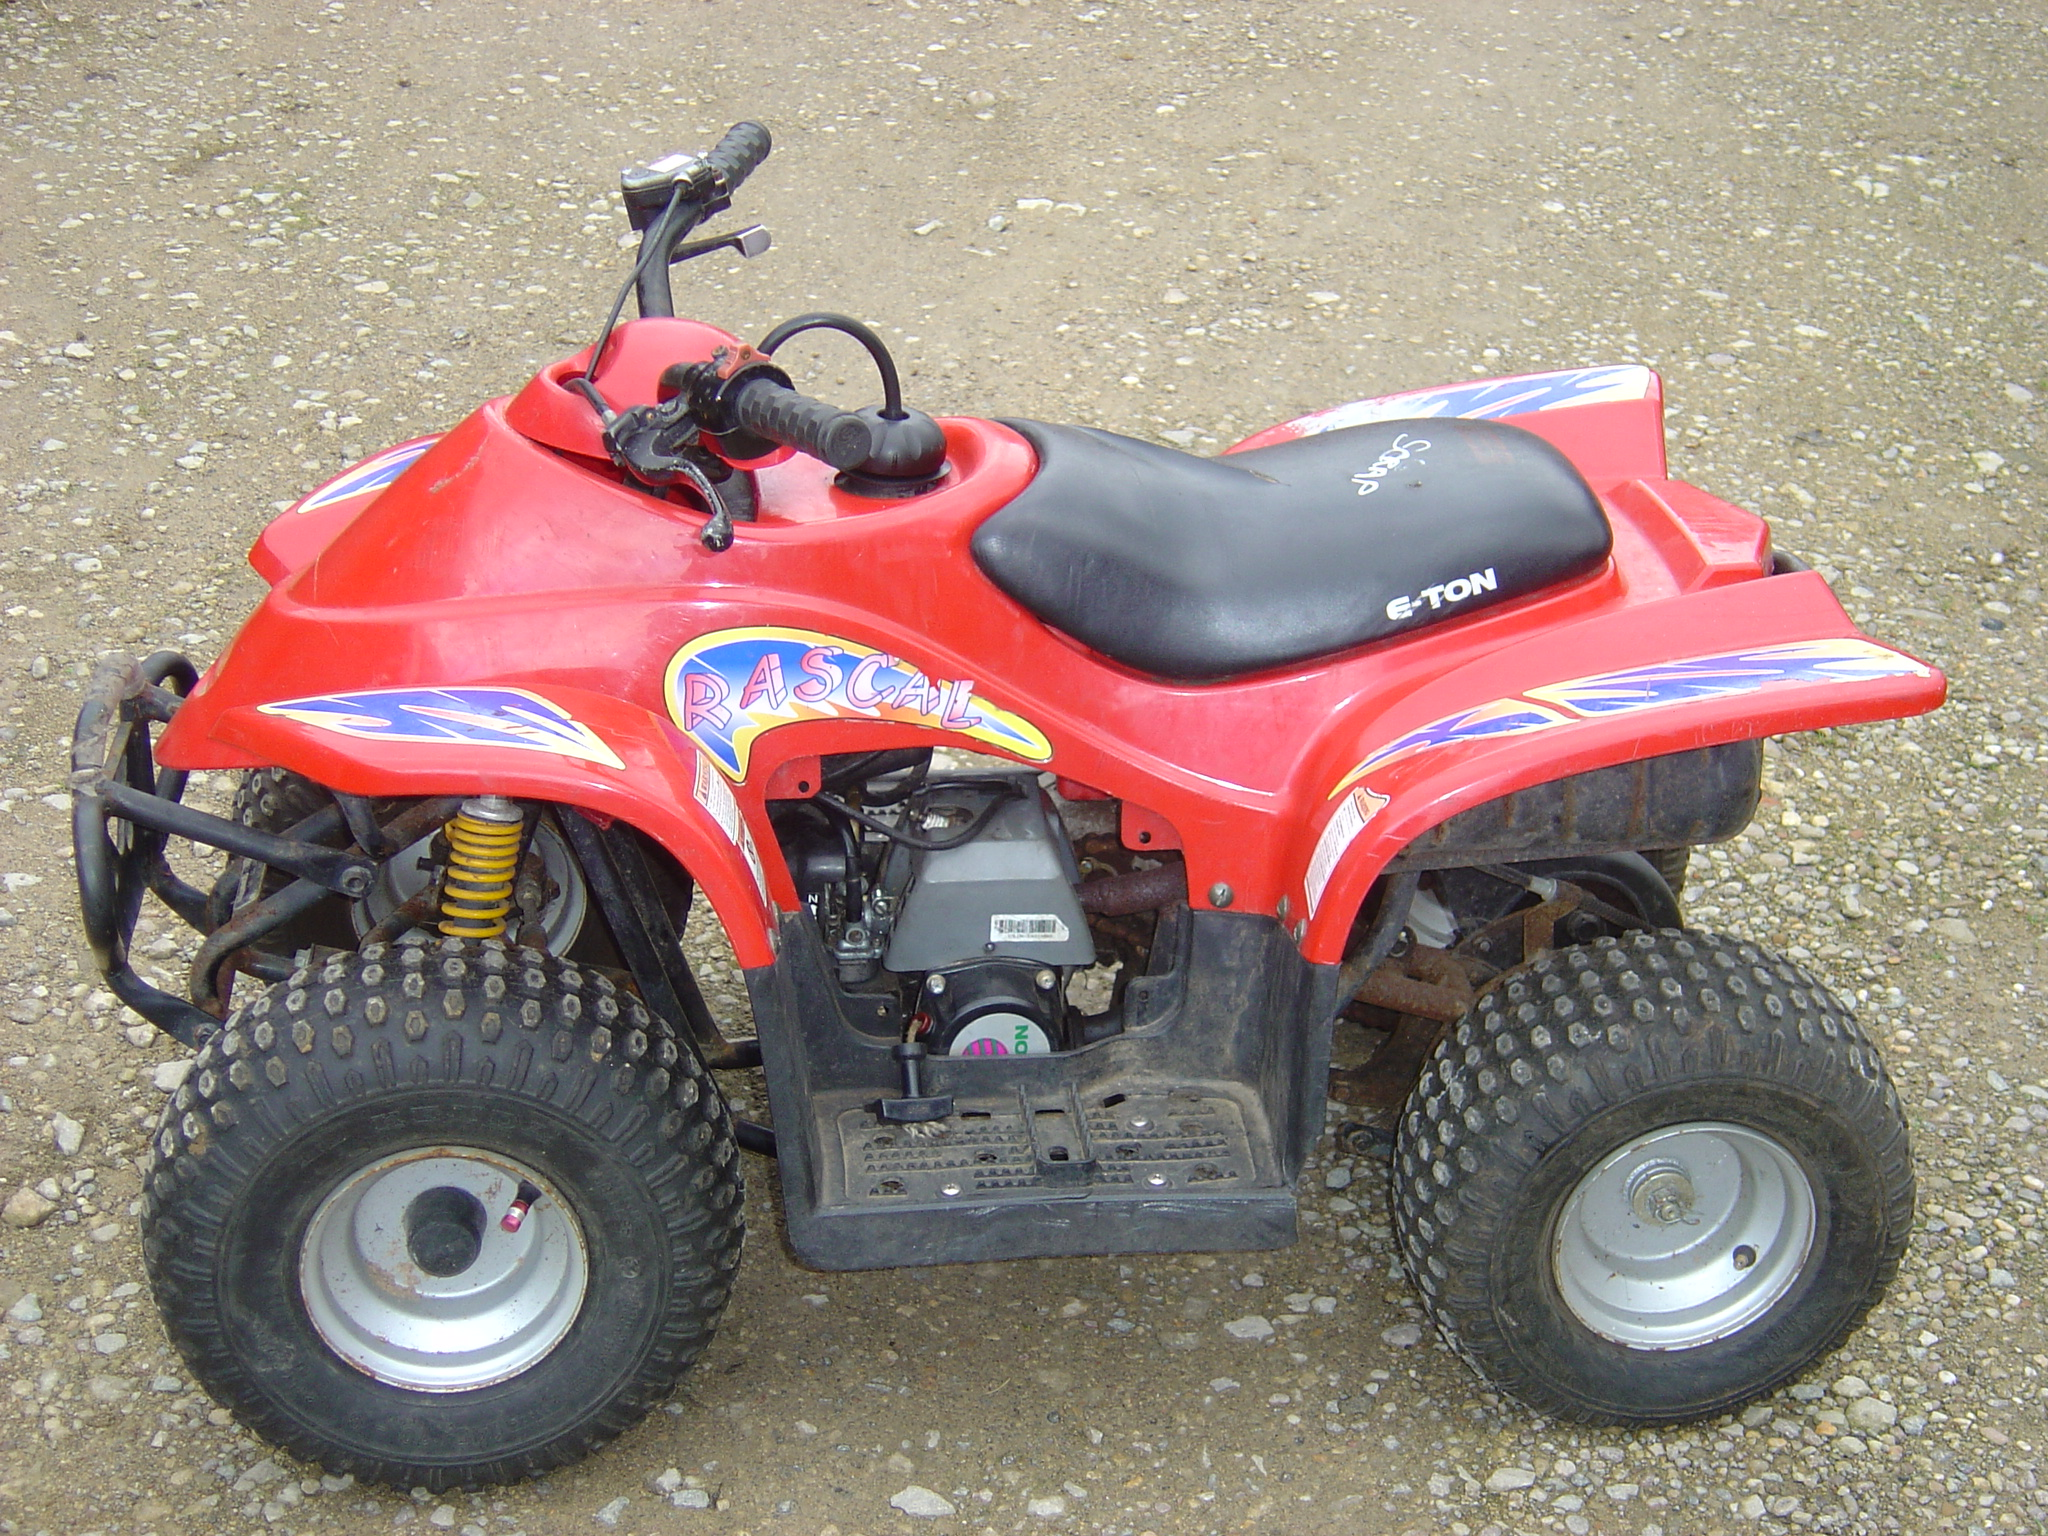 Eton Rascal 50 Quad Bike Spares | www.motor-bike-breakers.co.uk